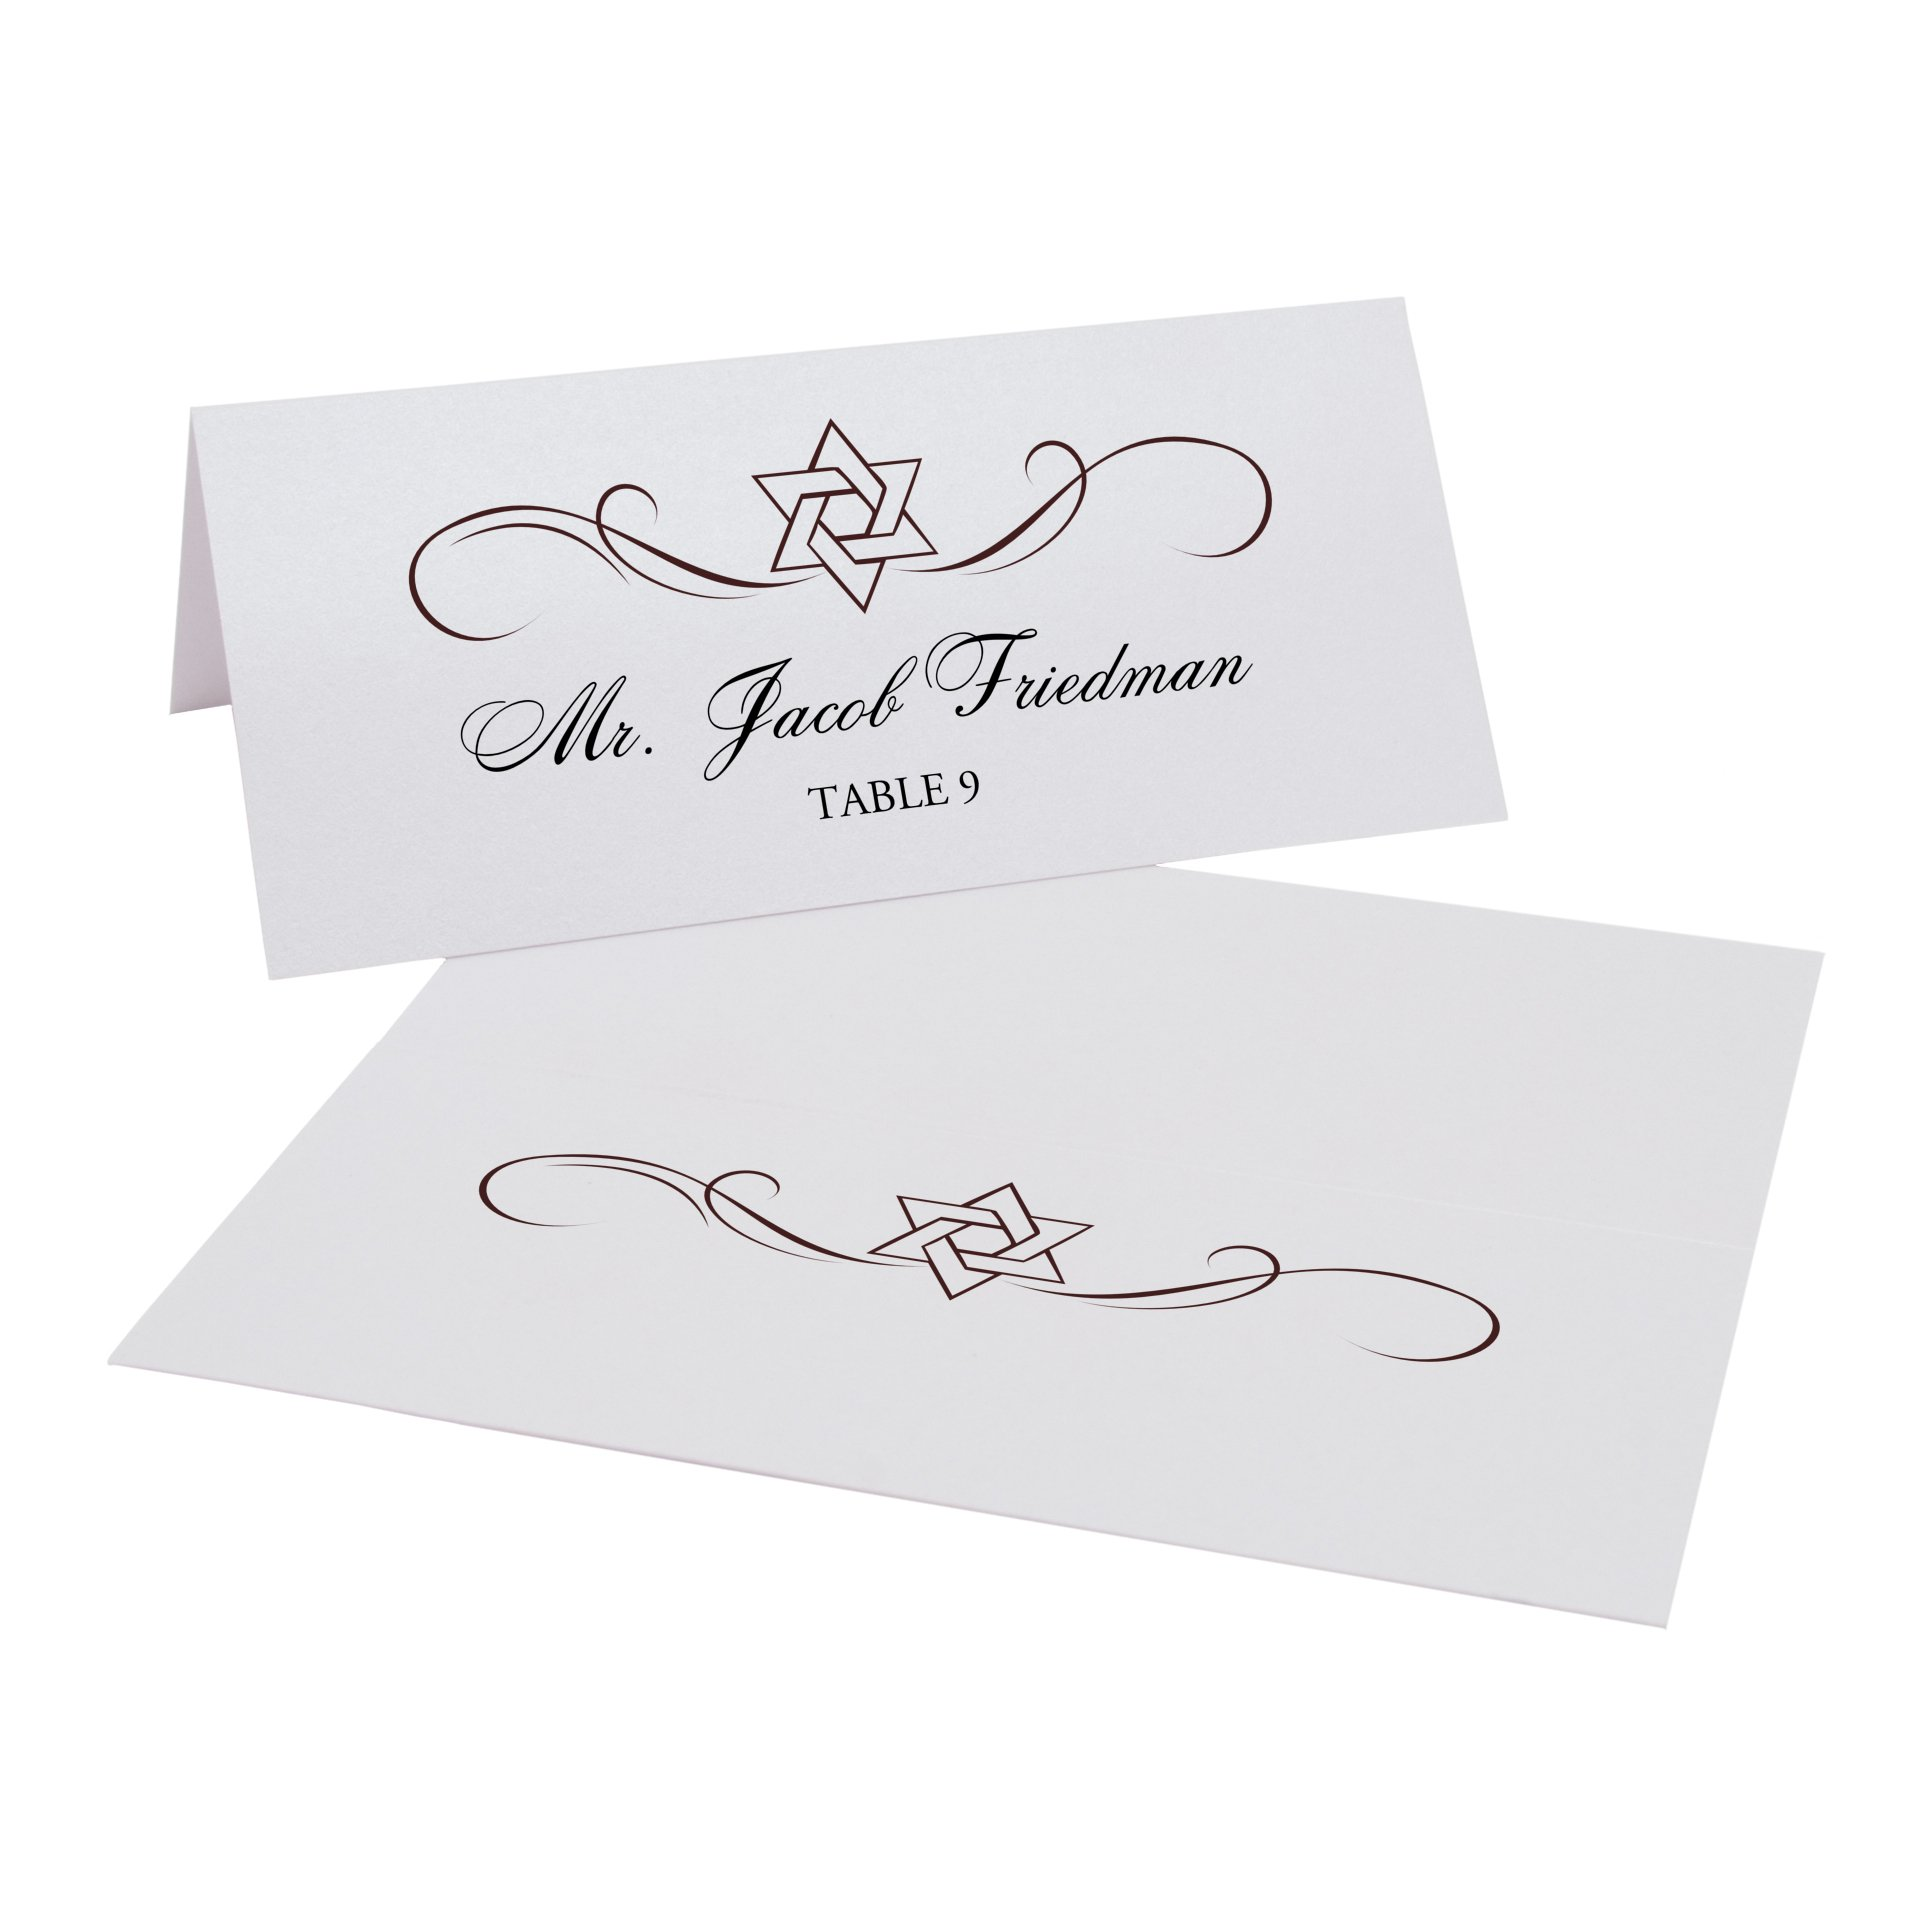 Intertwined Star of David Flourish Jewish Place Cards, Pearl White, Chocolate, Set of 375 by Documents and Designs